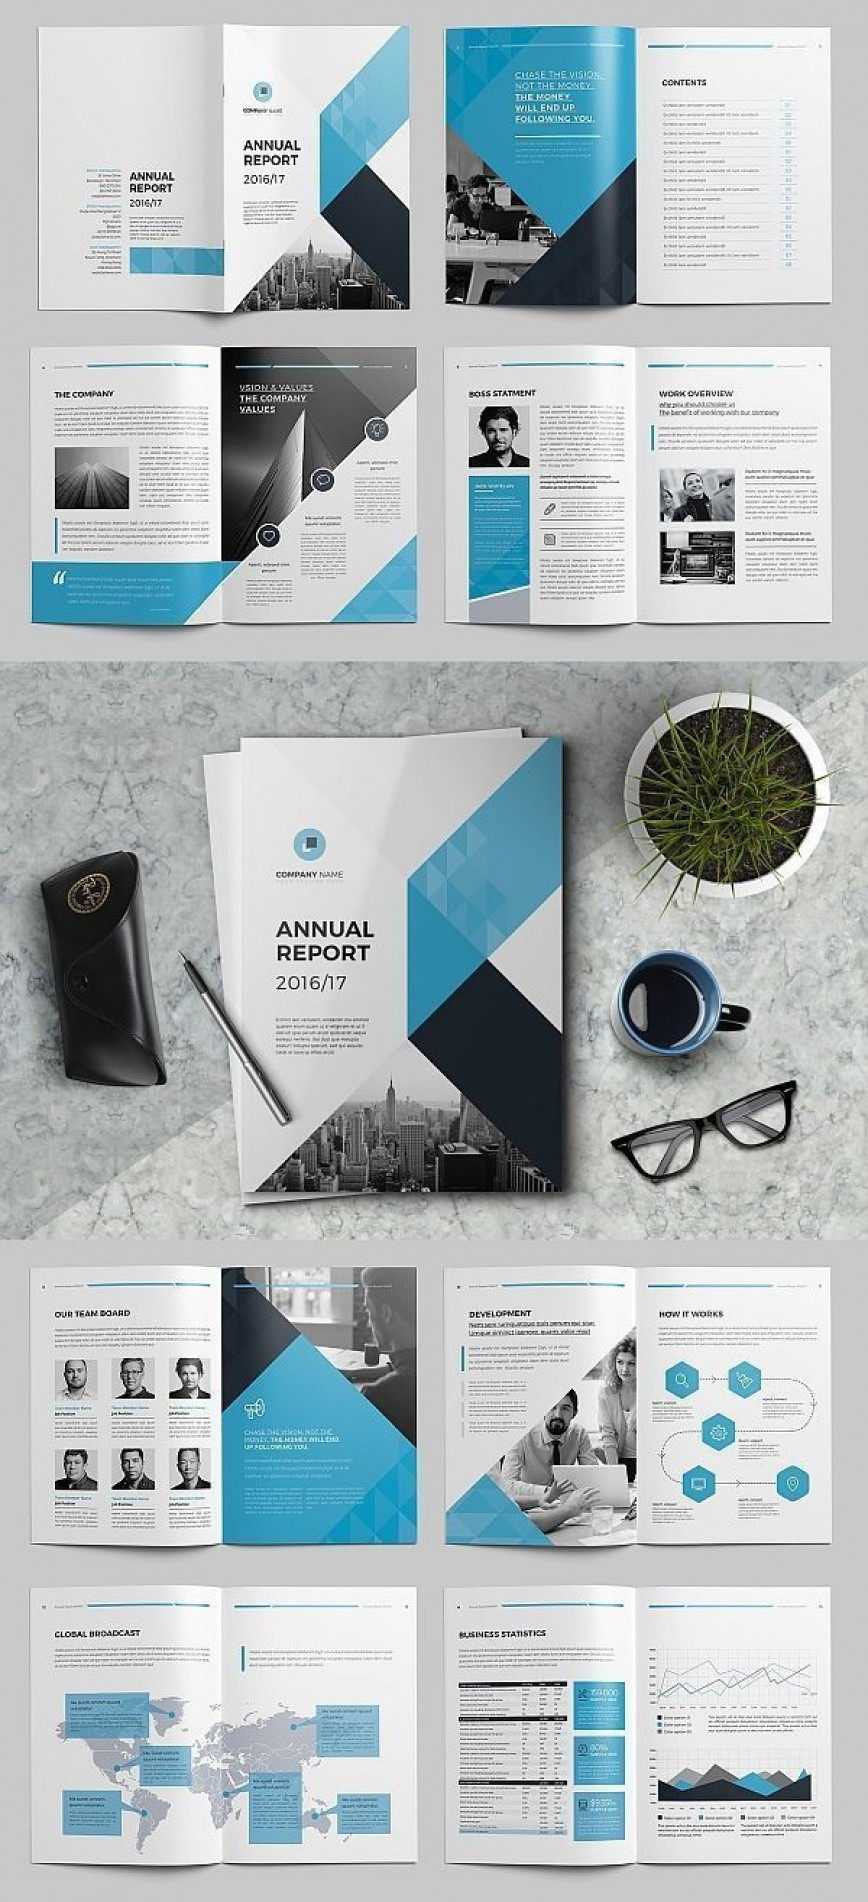 001 Incredible Free Annual Report Template Indesign Image  Adobe Non Profit868